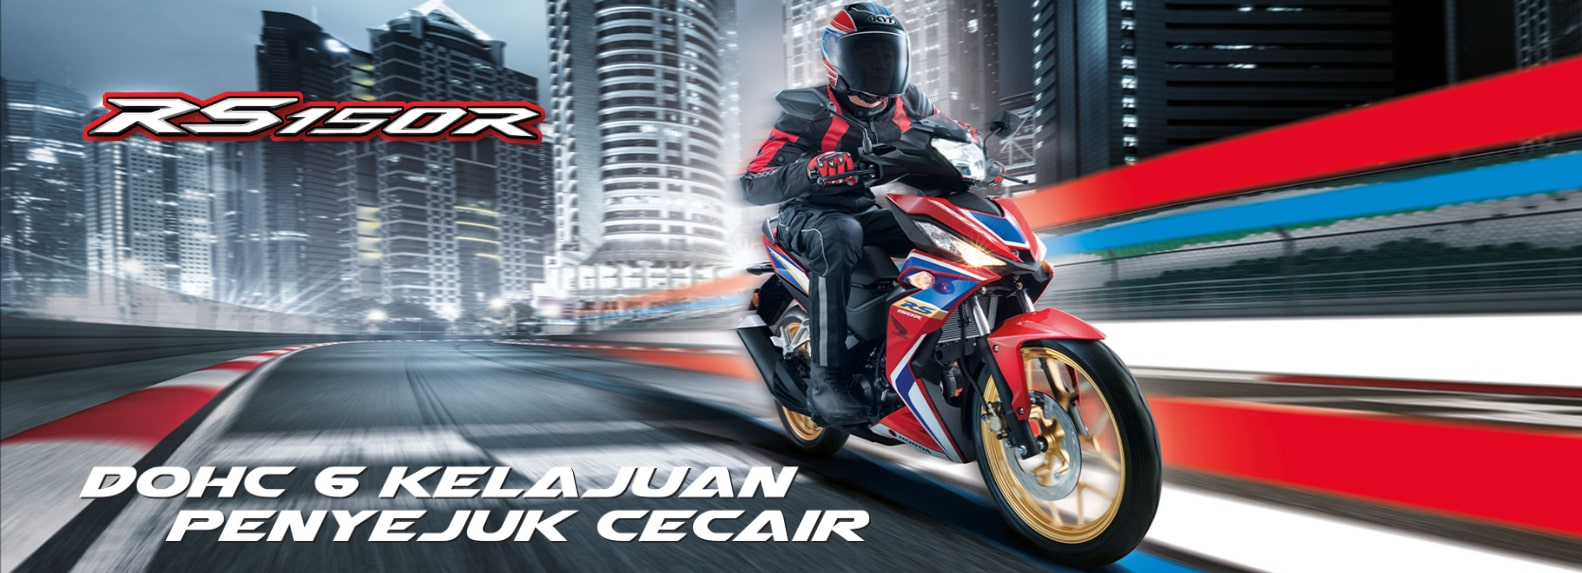 RS150R 2020